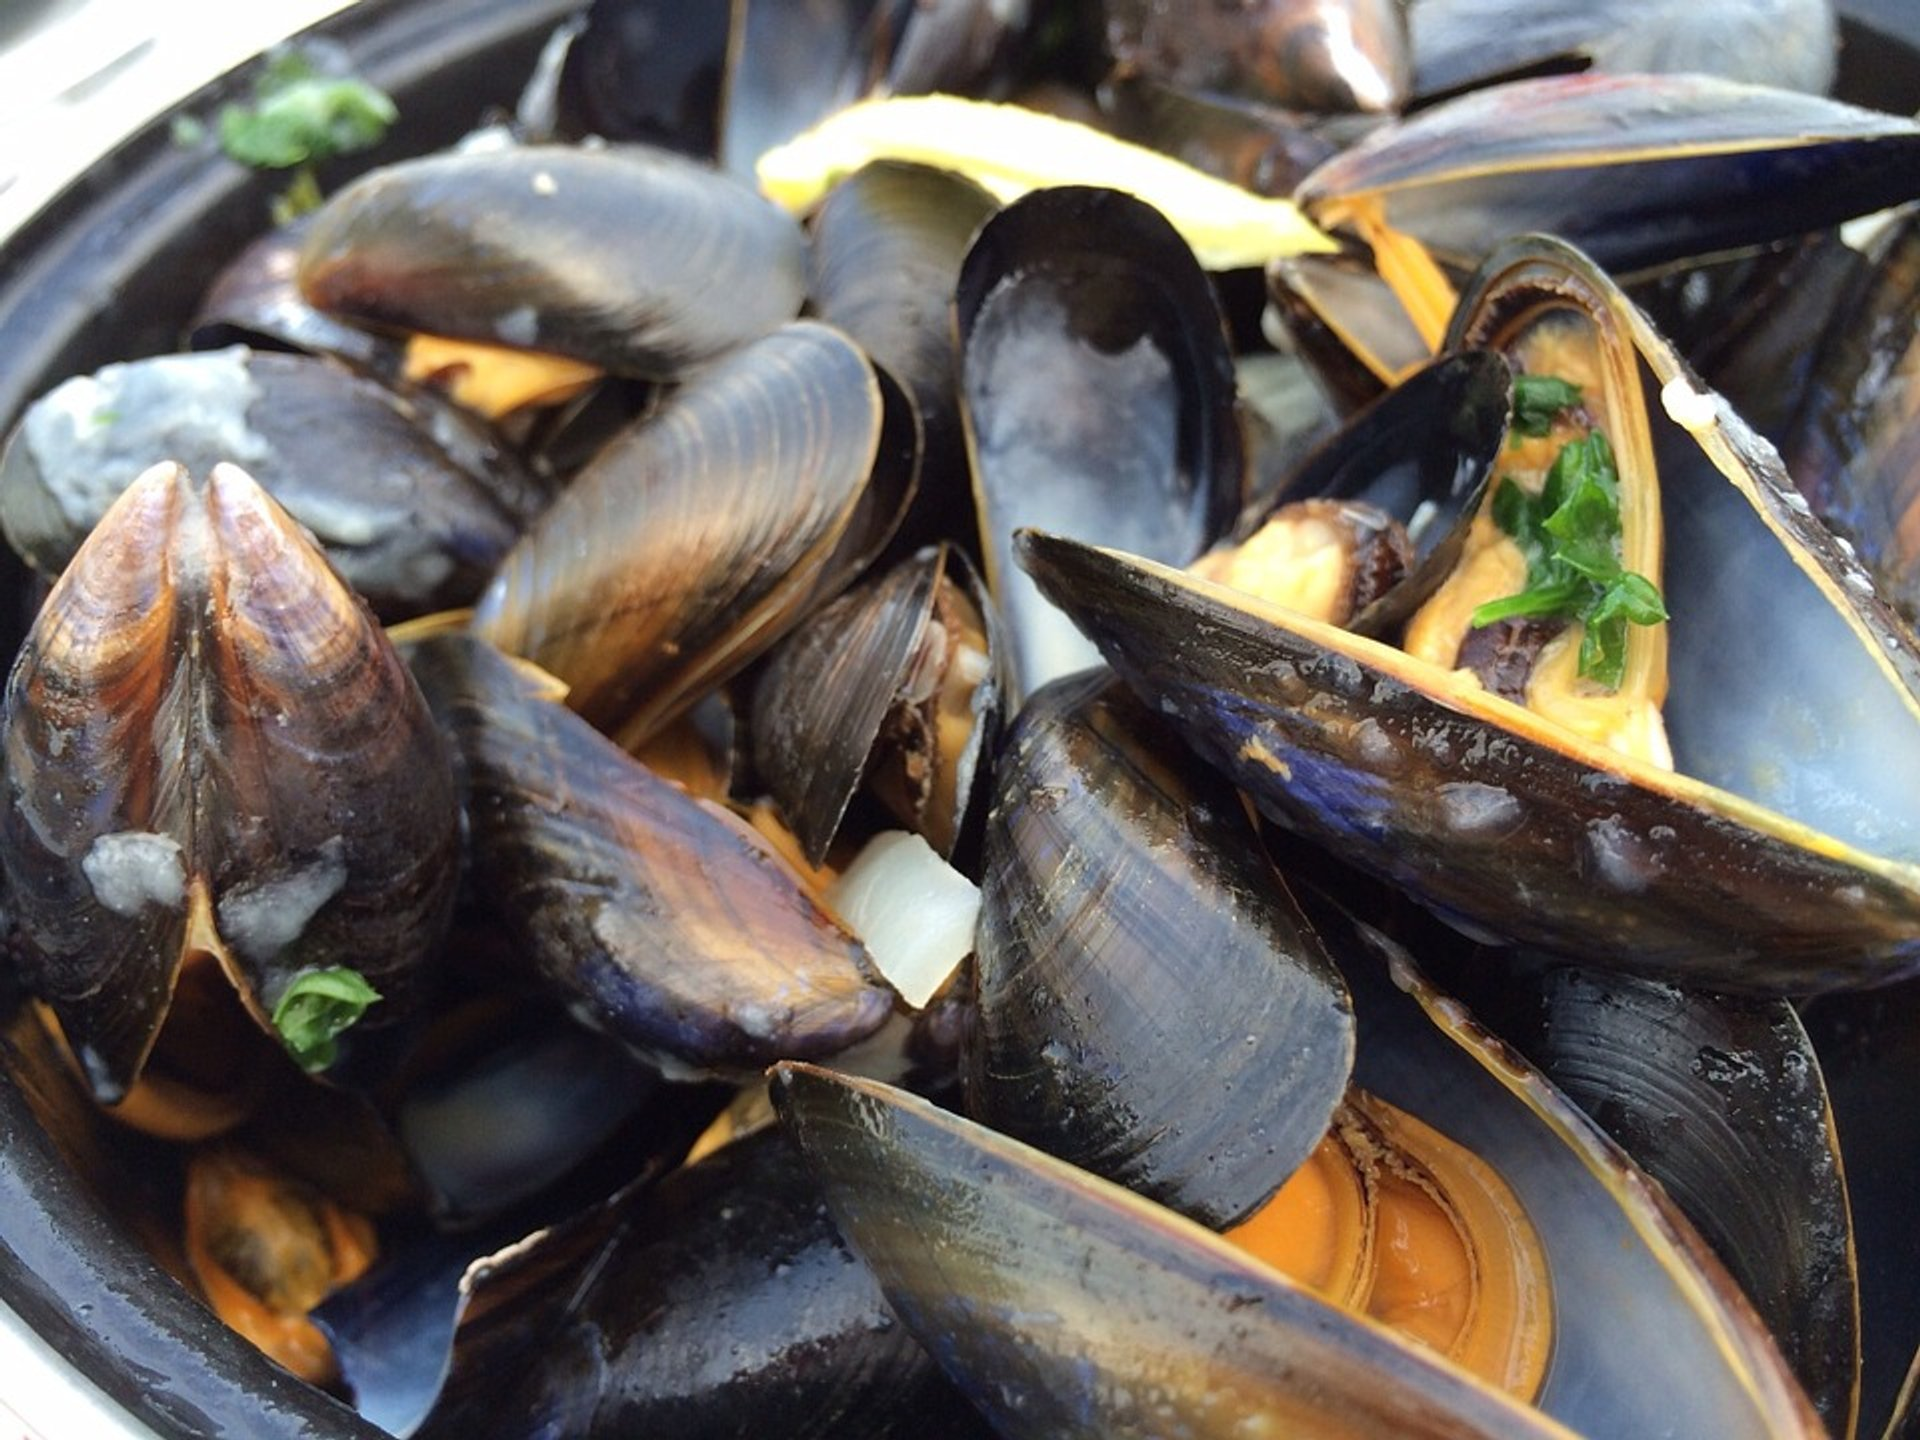 Mussels in England 2019 - Best Time